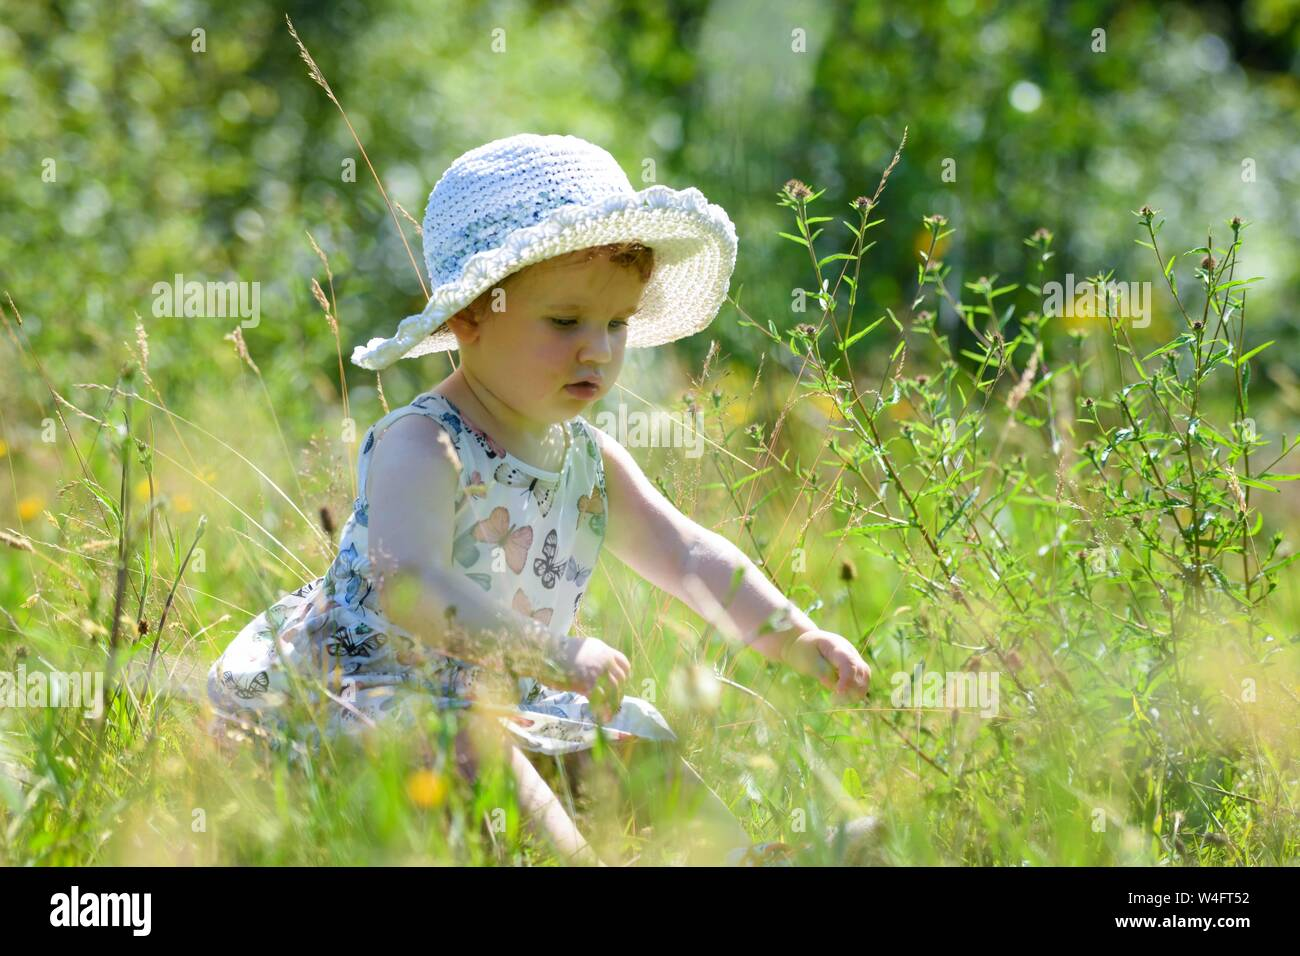 Gower, Wales, UK. 23rd July 2019. UK Weather: Pictured is toddler Lillian Joy, enjoying the scorching sunshine in a summer dress and hat, on the Gower Peninsular in South Wales, as temperatures soar across the UK at the start on the Summer school holidays, on the hottest day of the year to date. Credit : Robert Melen/Alamy Live News Stock Photo